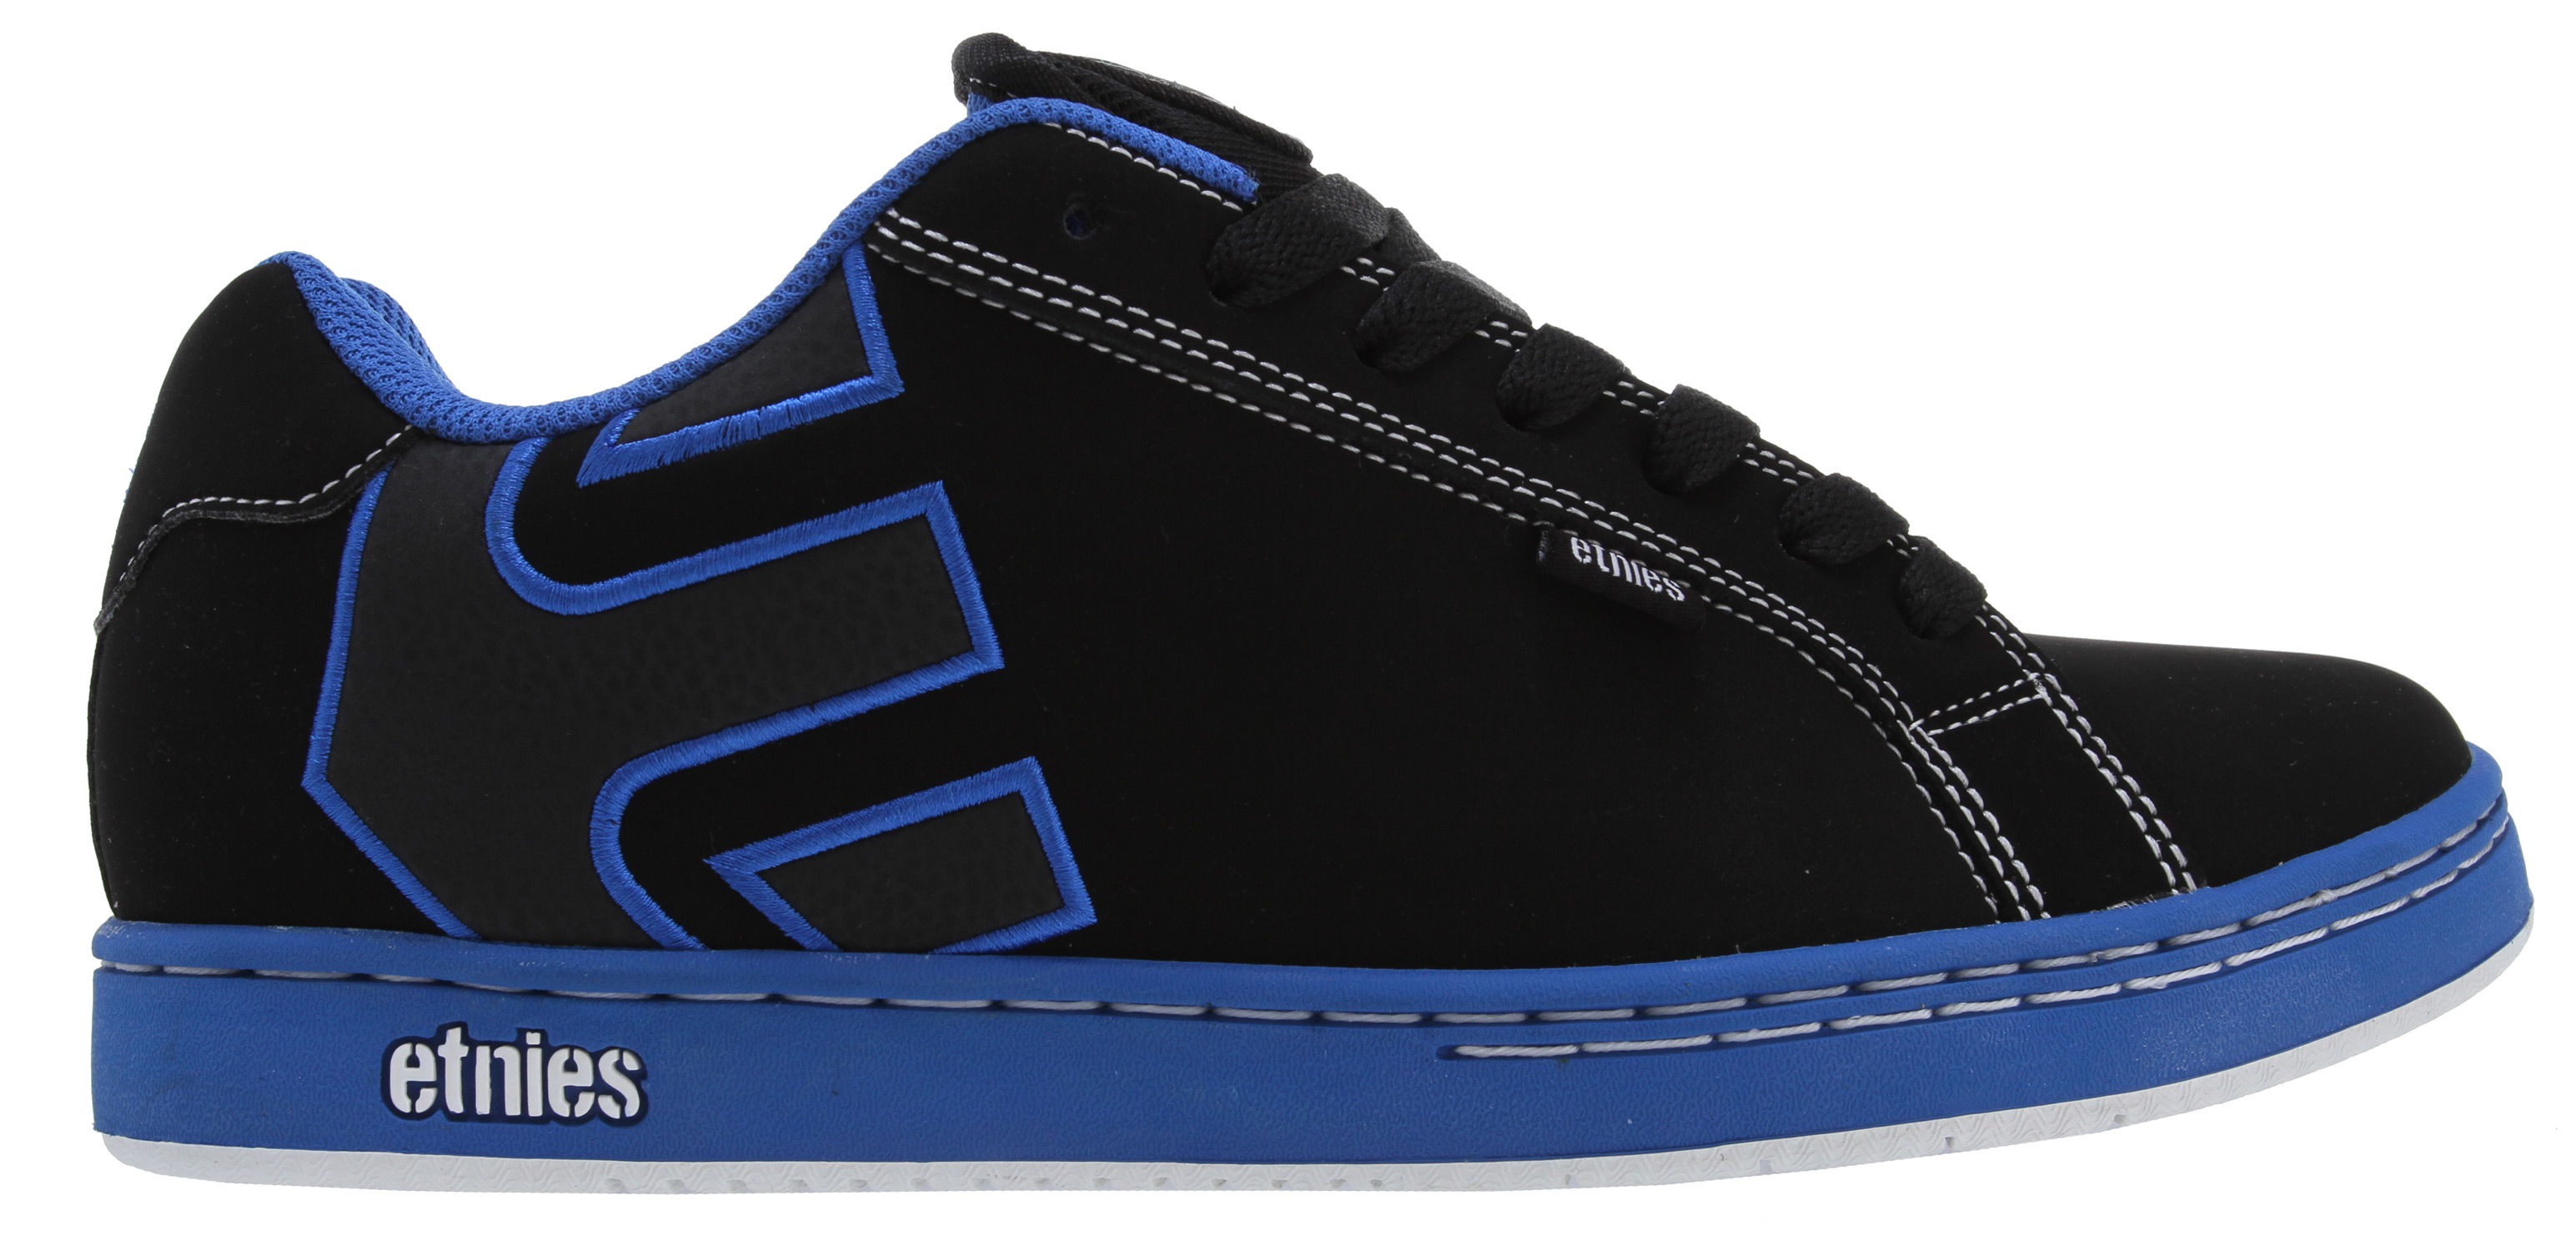 Skateboard Key Features of the Etnies Fader Skate Shoes: Trademark etnies Arrow logo integrated into heel area Elastic tongue-centering straps Padded tongue and collar STI Foam Lite Level 1 footbed New 300 NBS rubber outsole with internal EVA midsole - $45.95